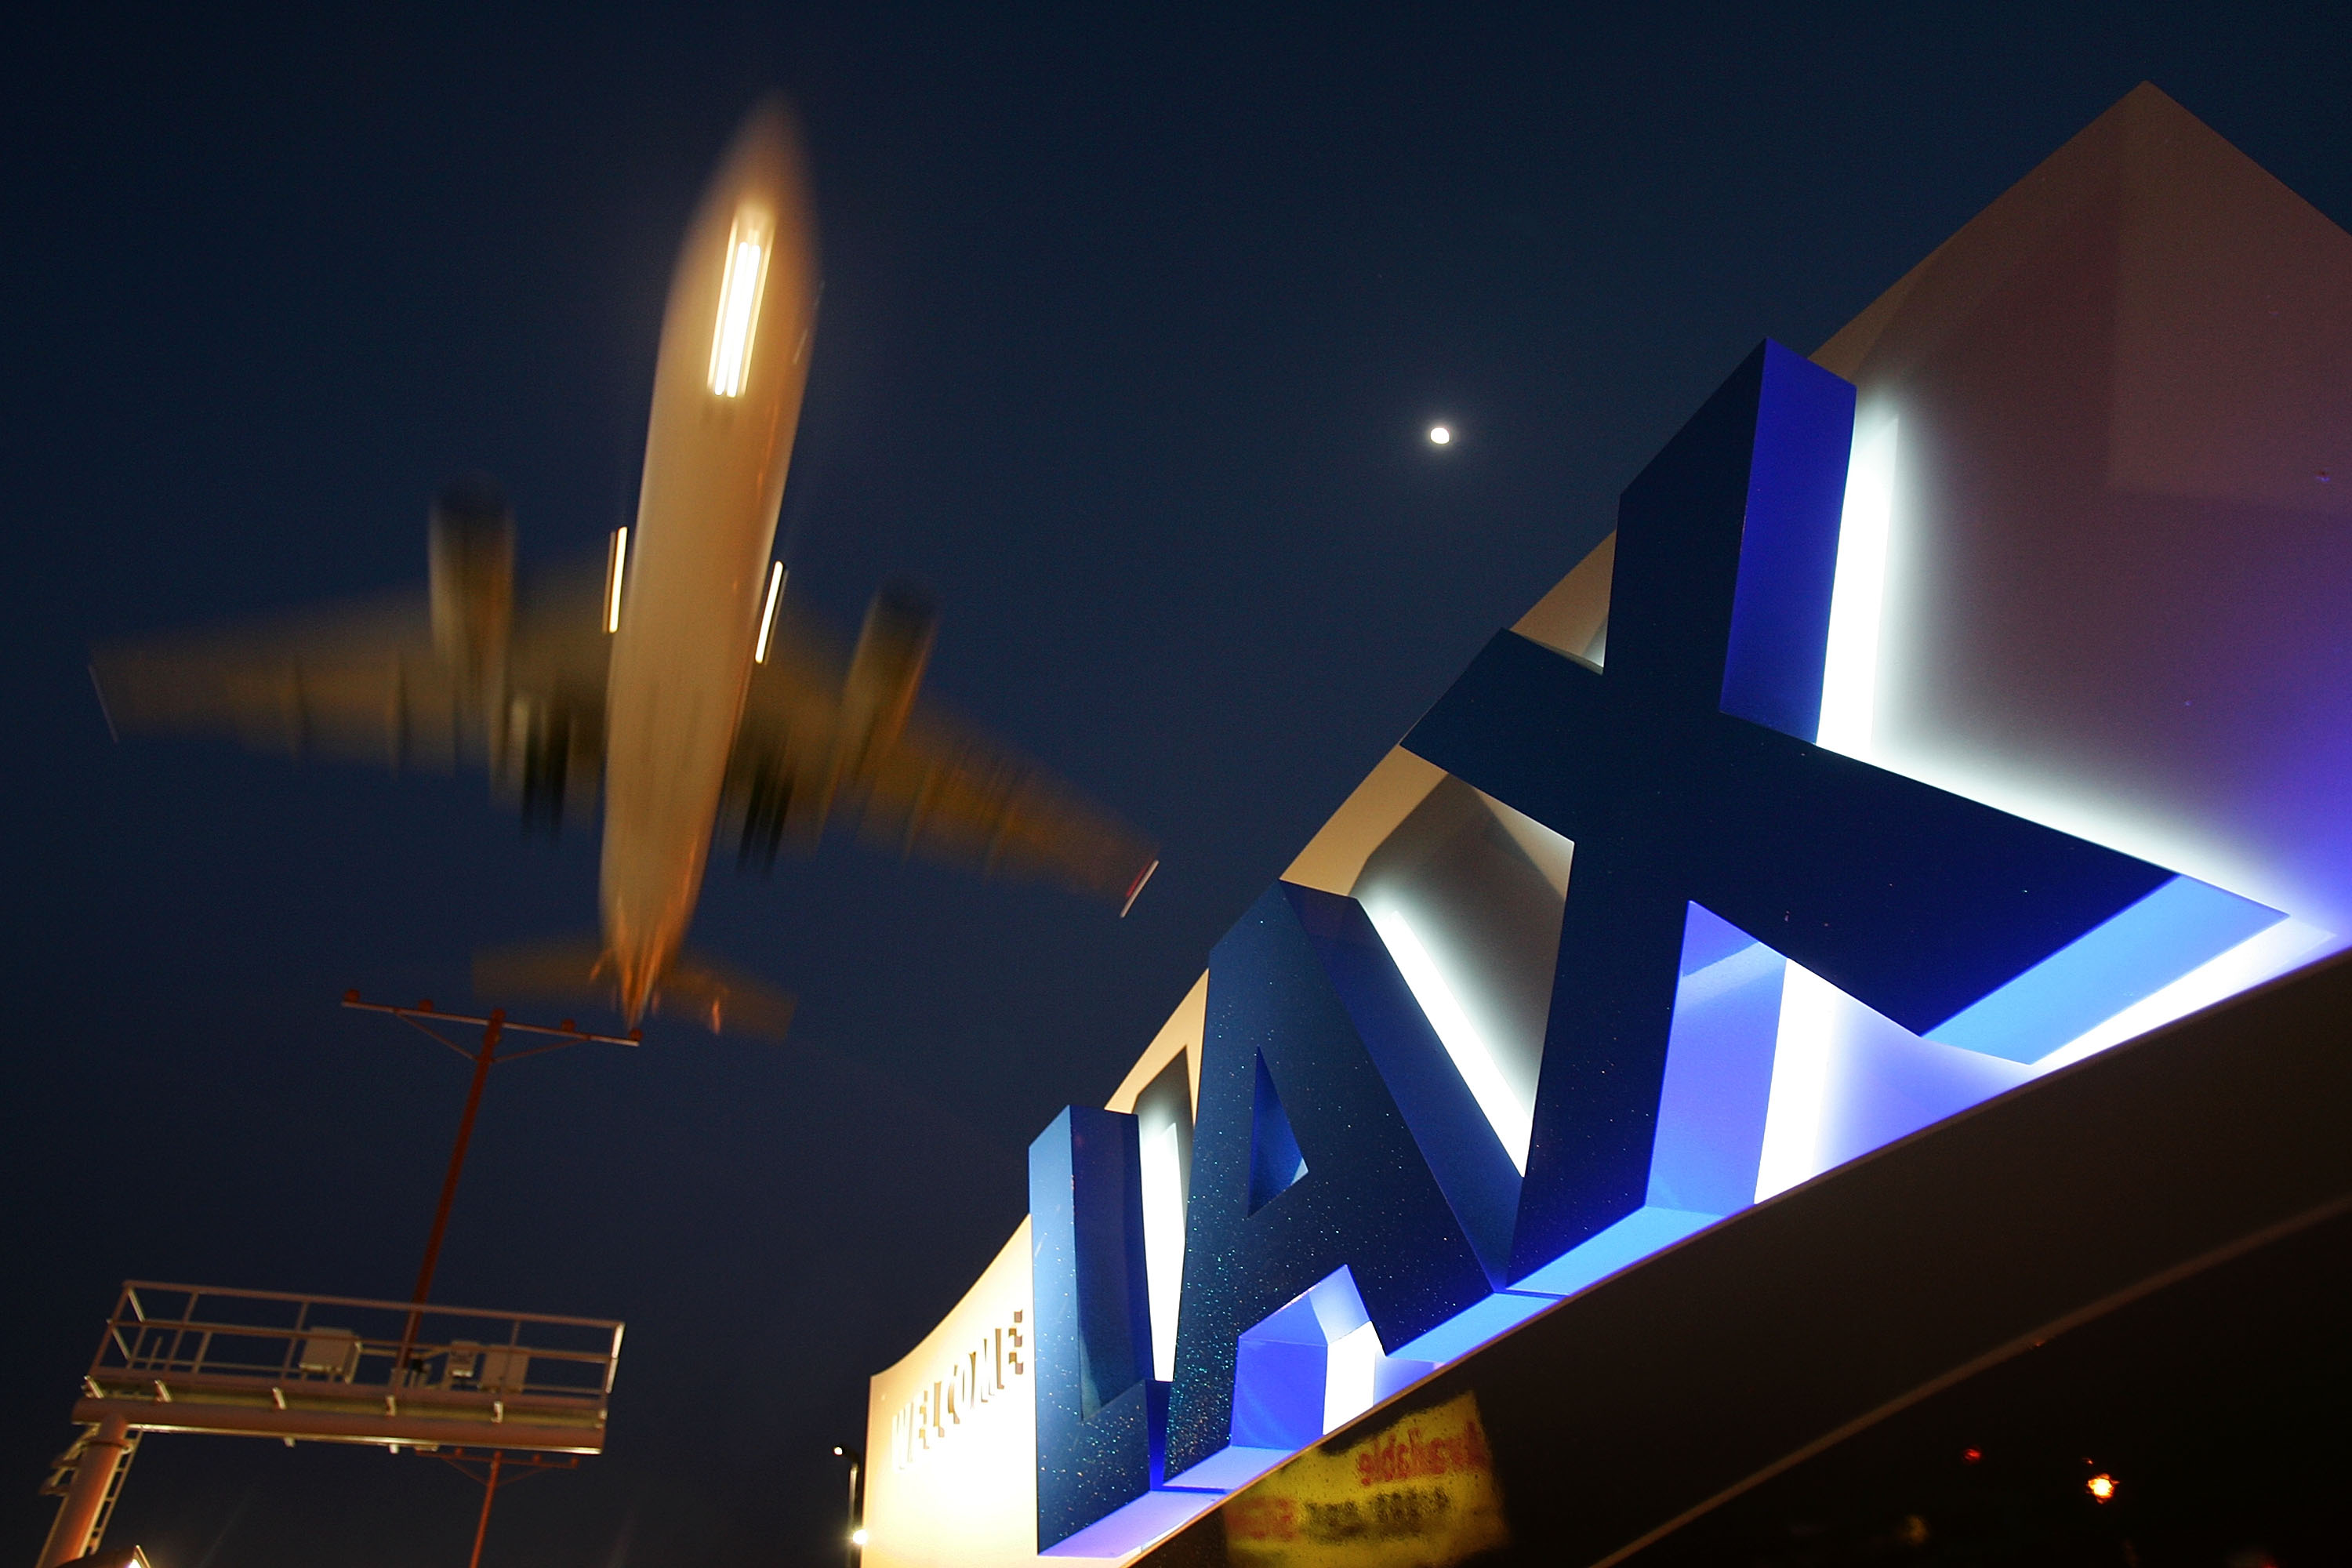 A jet comes in for landing at Los Angeles International Airport on April 15, 2008 in Los Angeles, California.